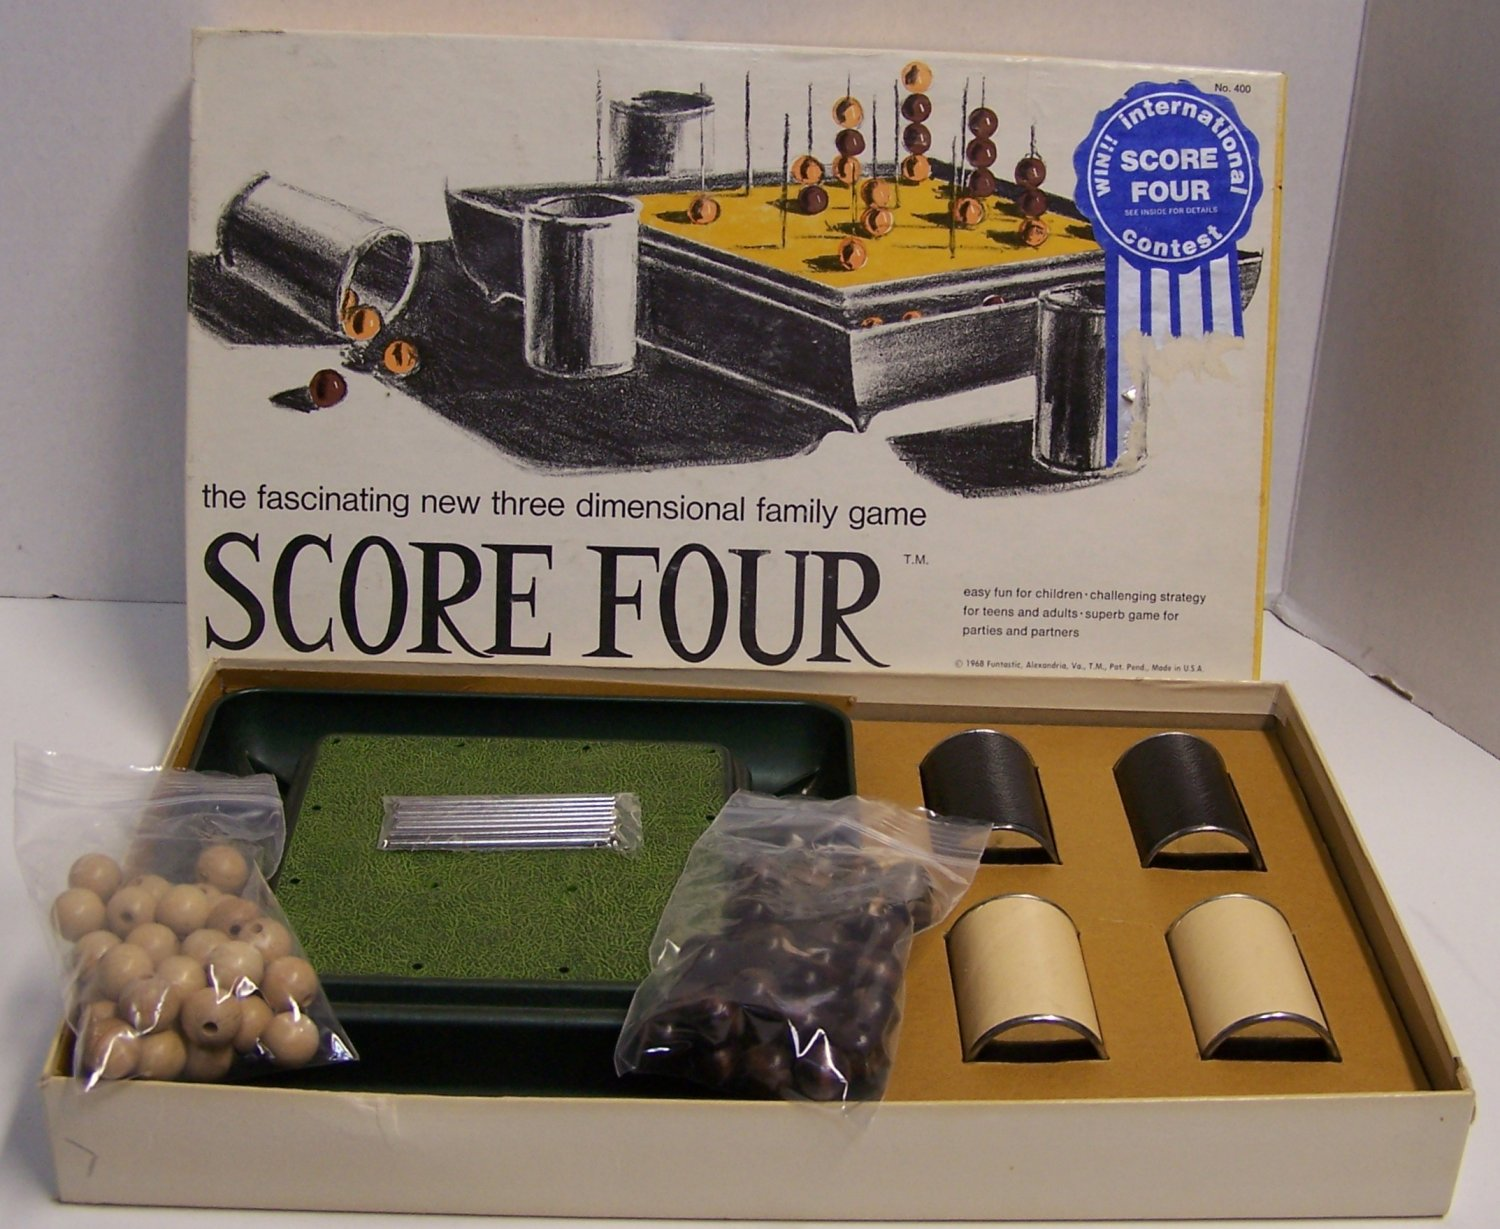 Score Four No. 400 1968: The fascinating new three dimensional family game by Funtastic